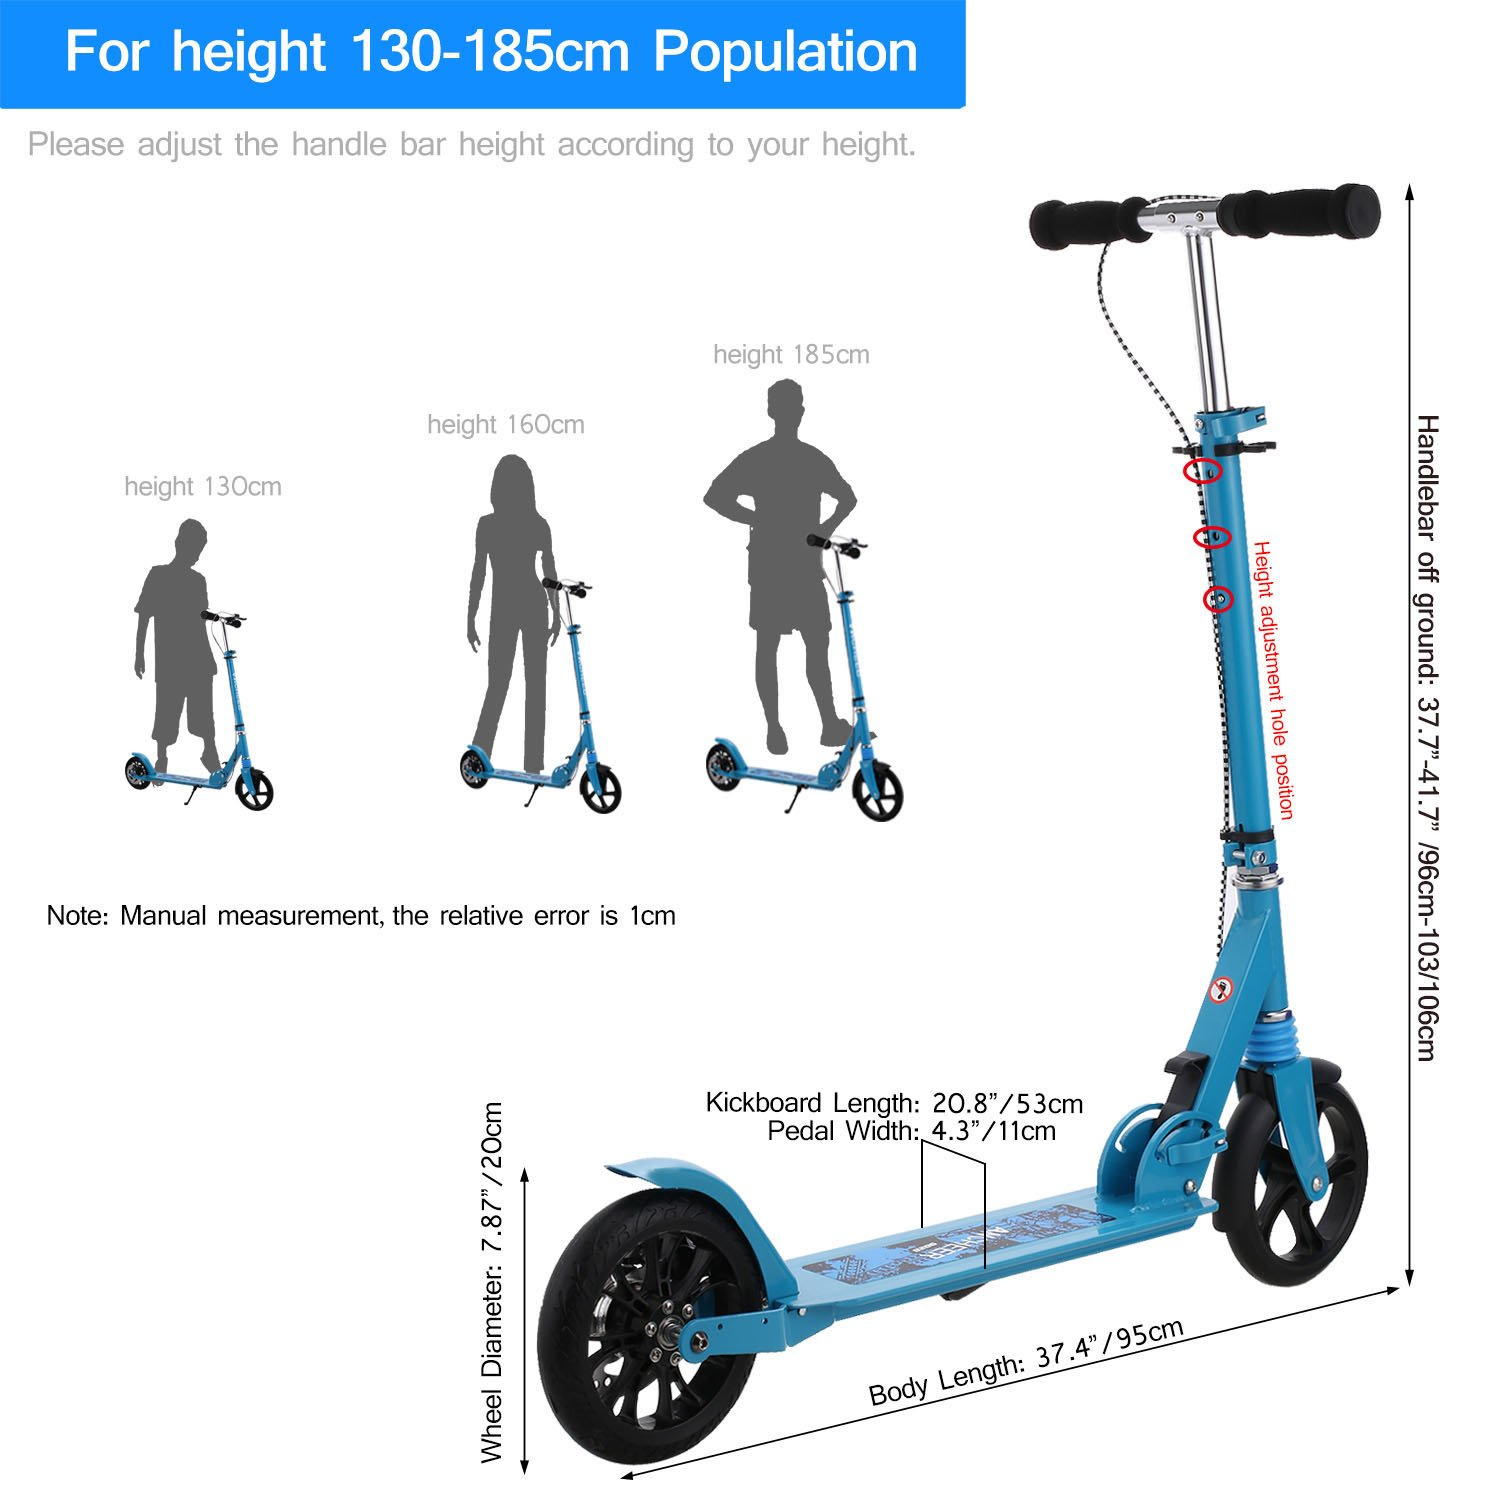 Amazon.com: Hikole - Patinete para adultos, altura ajustable ...